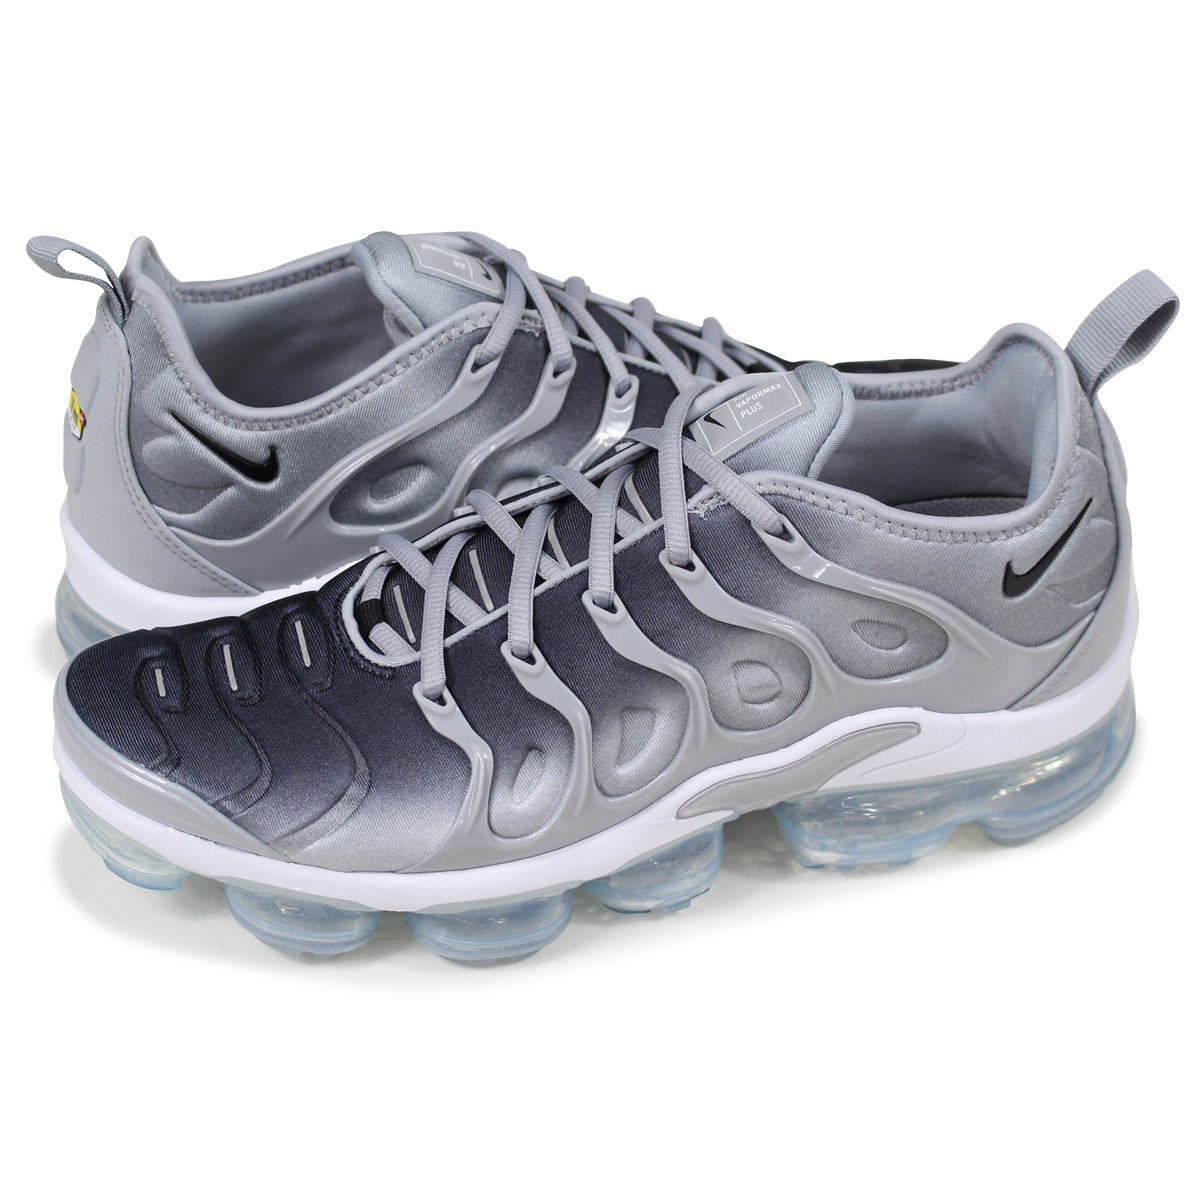 1c917eee3c0 Whats up Sports  NIKE AIR VAPORMAX PLUS Nike air vapor max plus ...